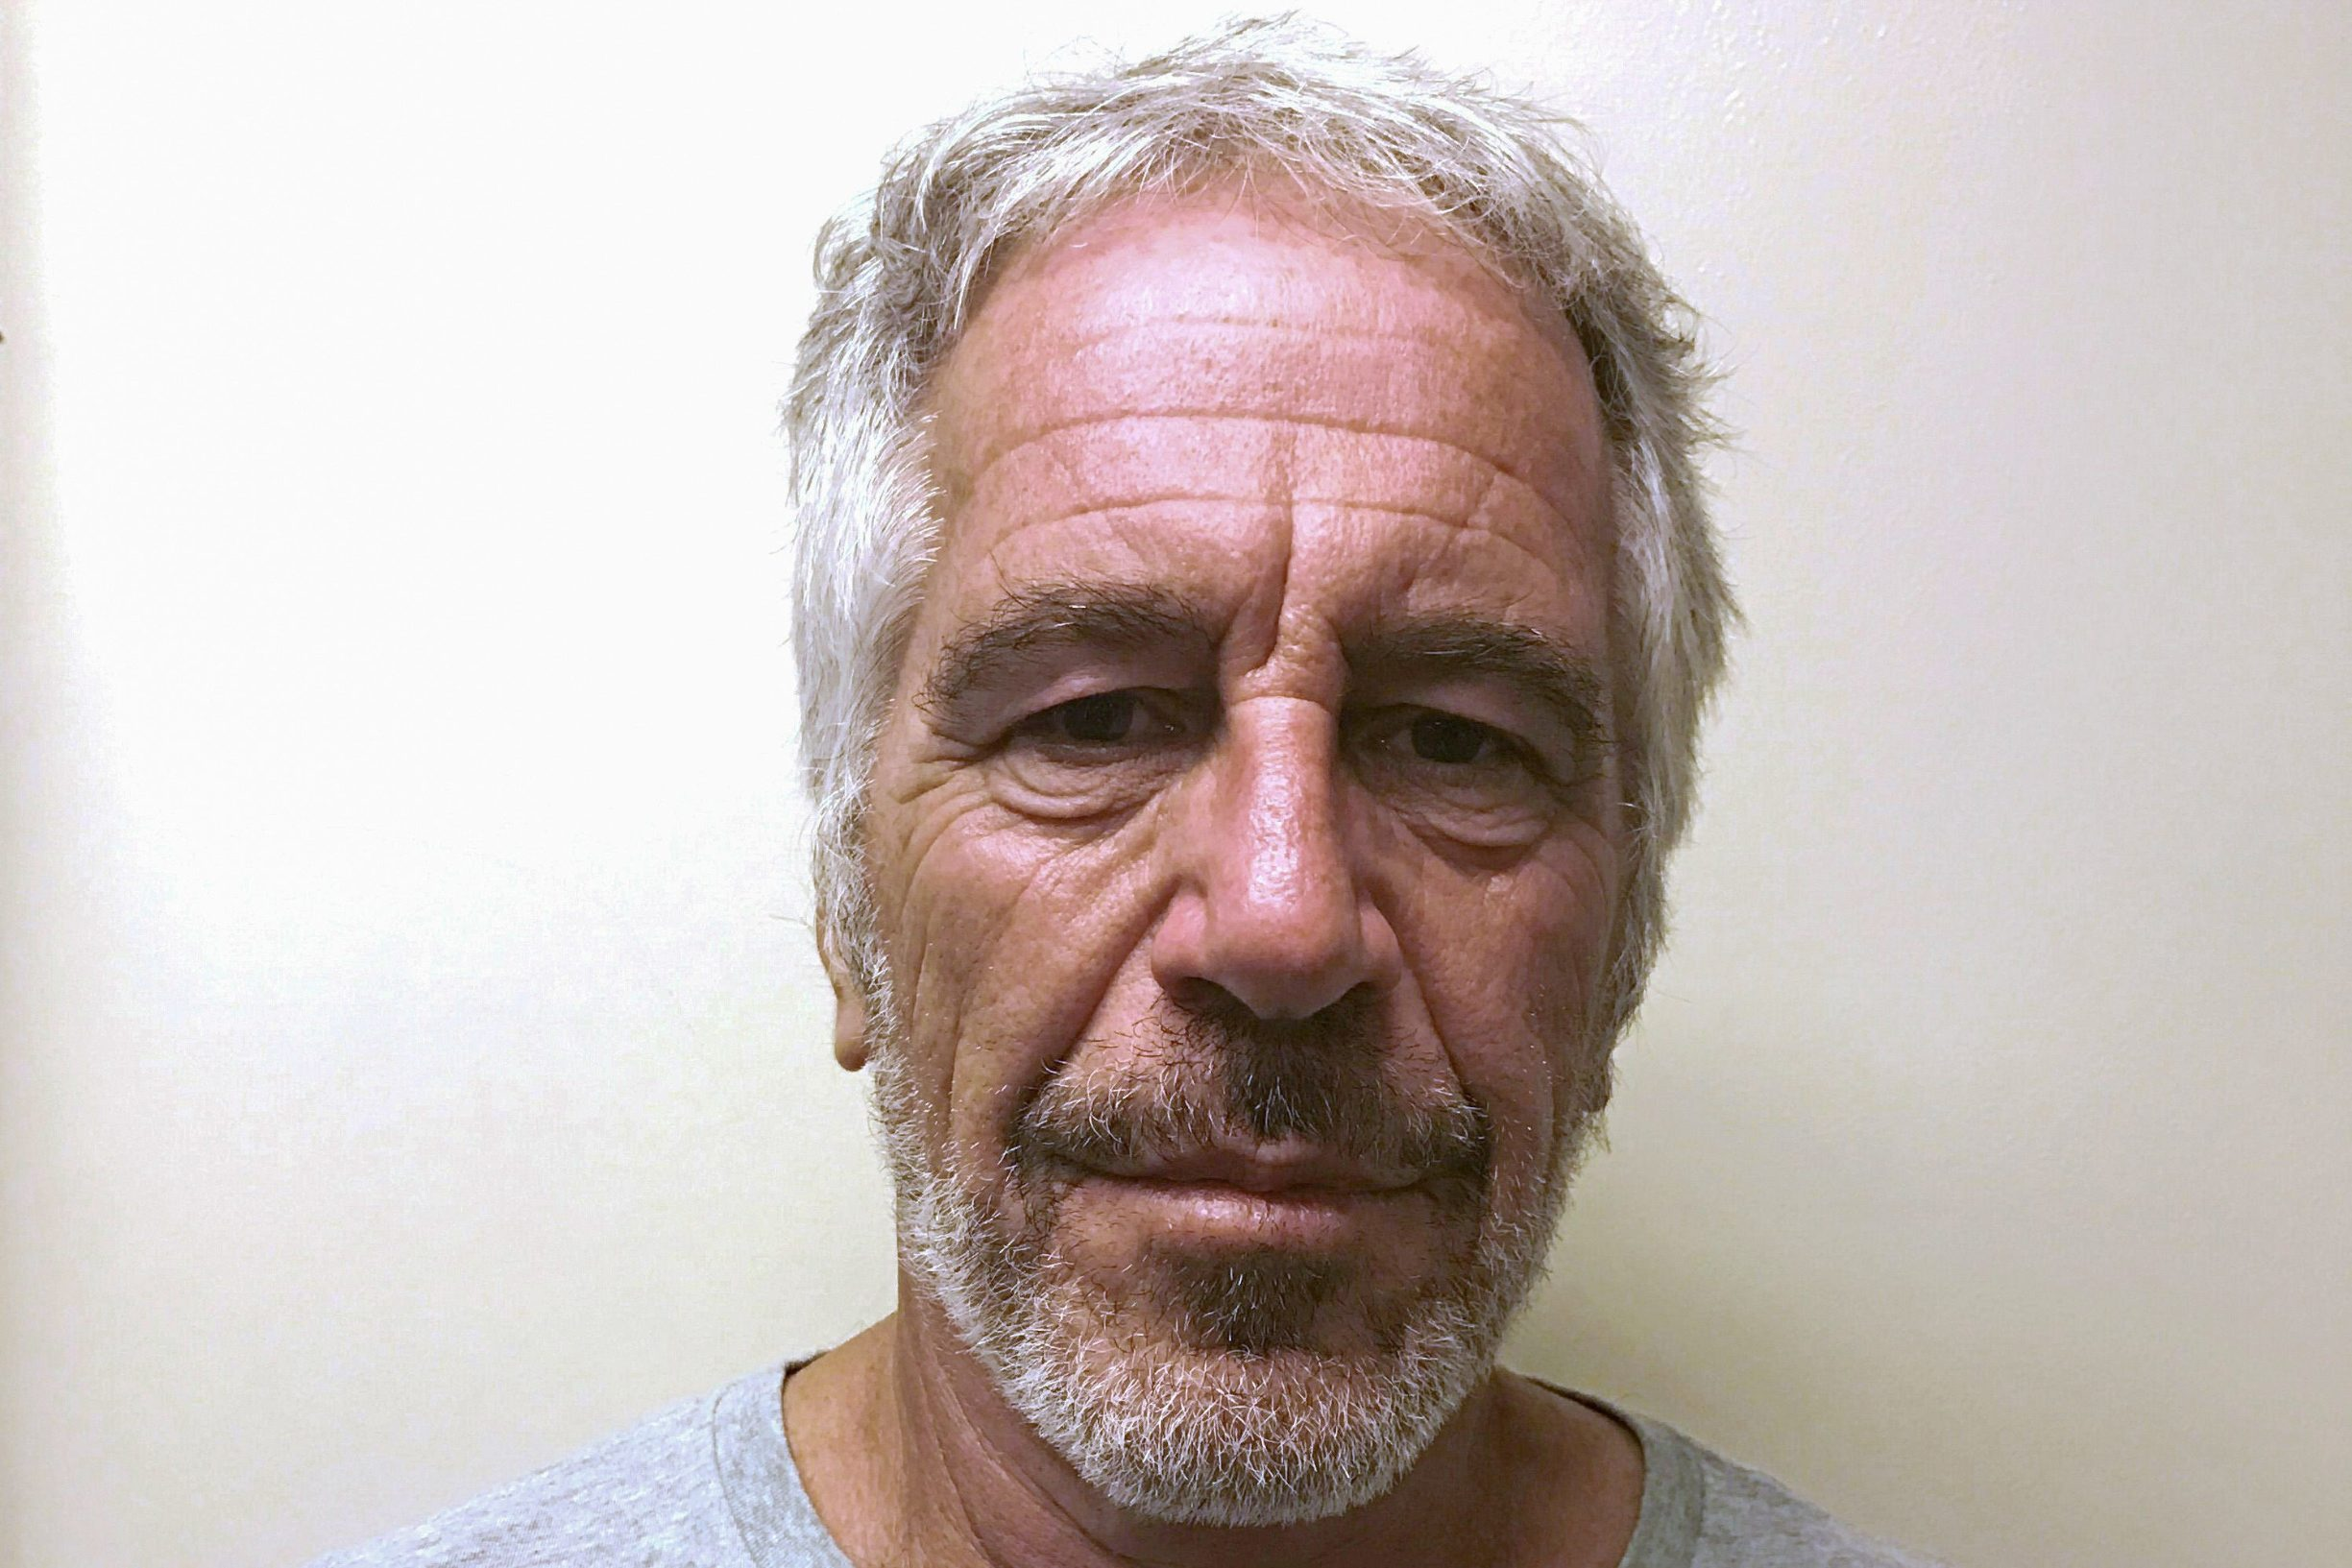 2019-07-25T172212Z_1662517099_RC1B886F72D0_RTRMADP_3_PEOPLE-JEFFREY-EPSTEIN